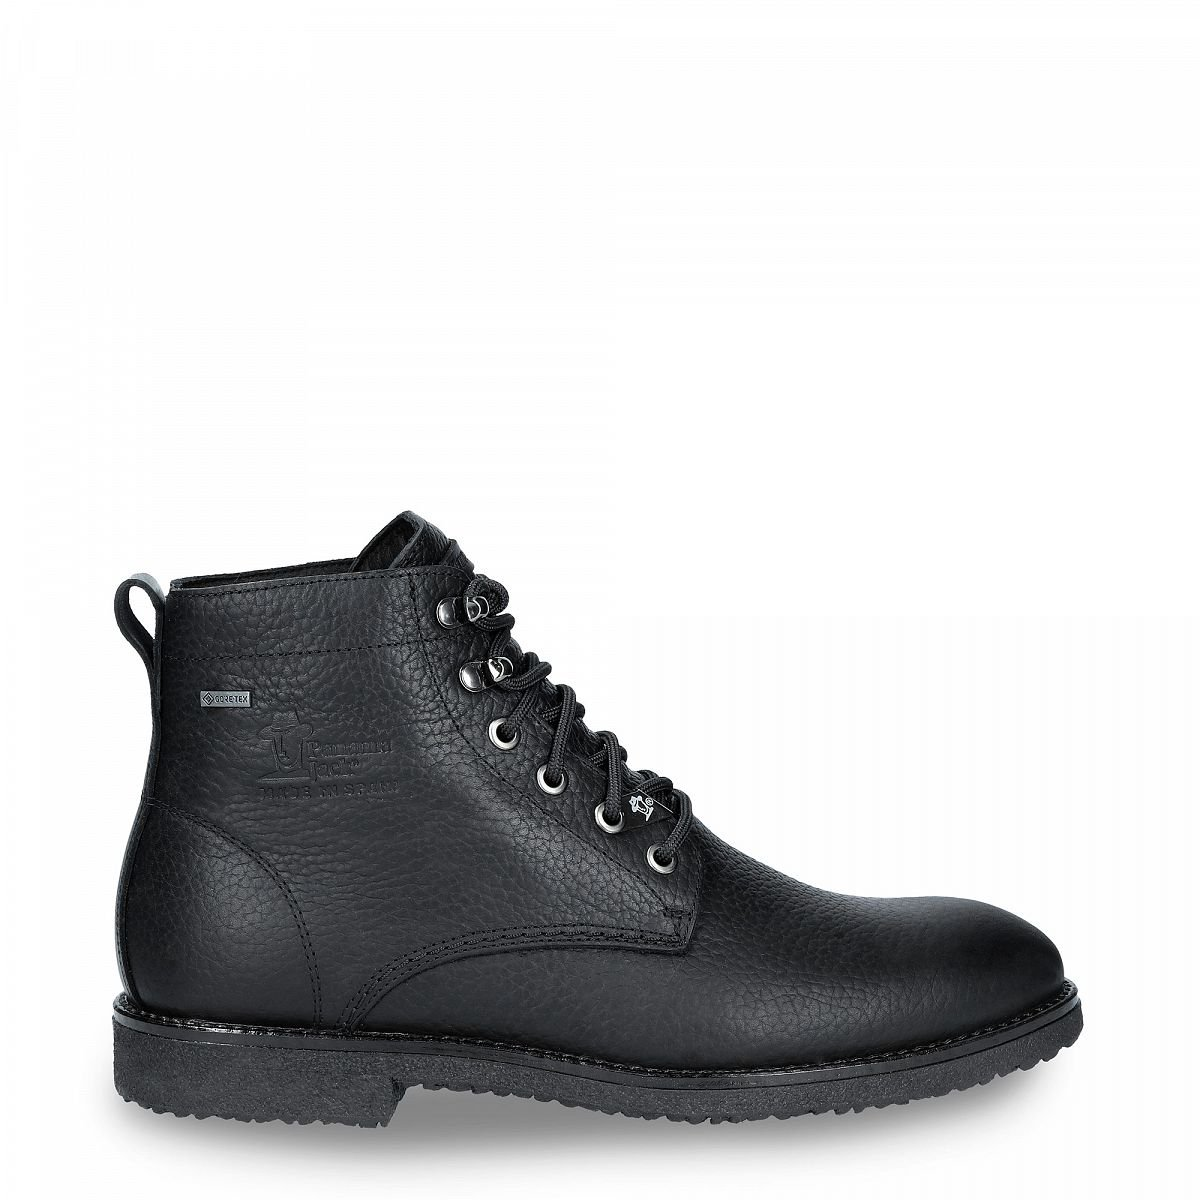 Glasgow Gtx Black Napa